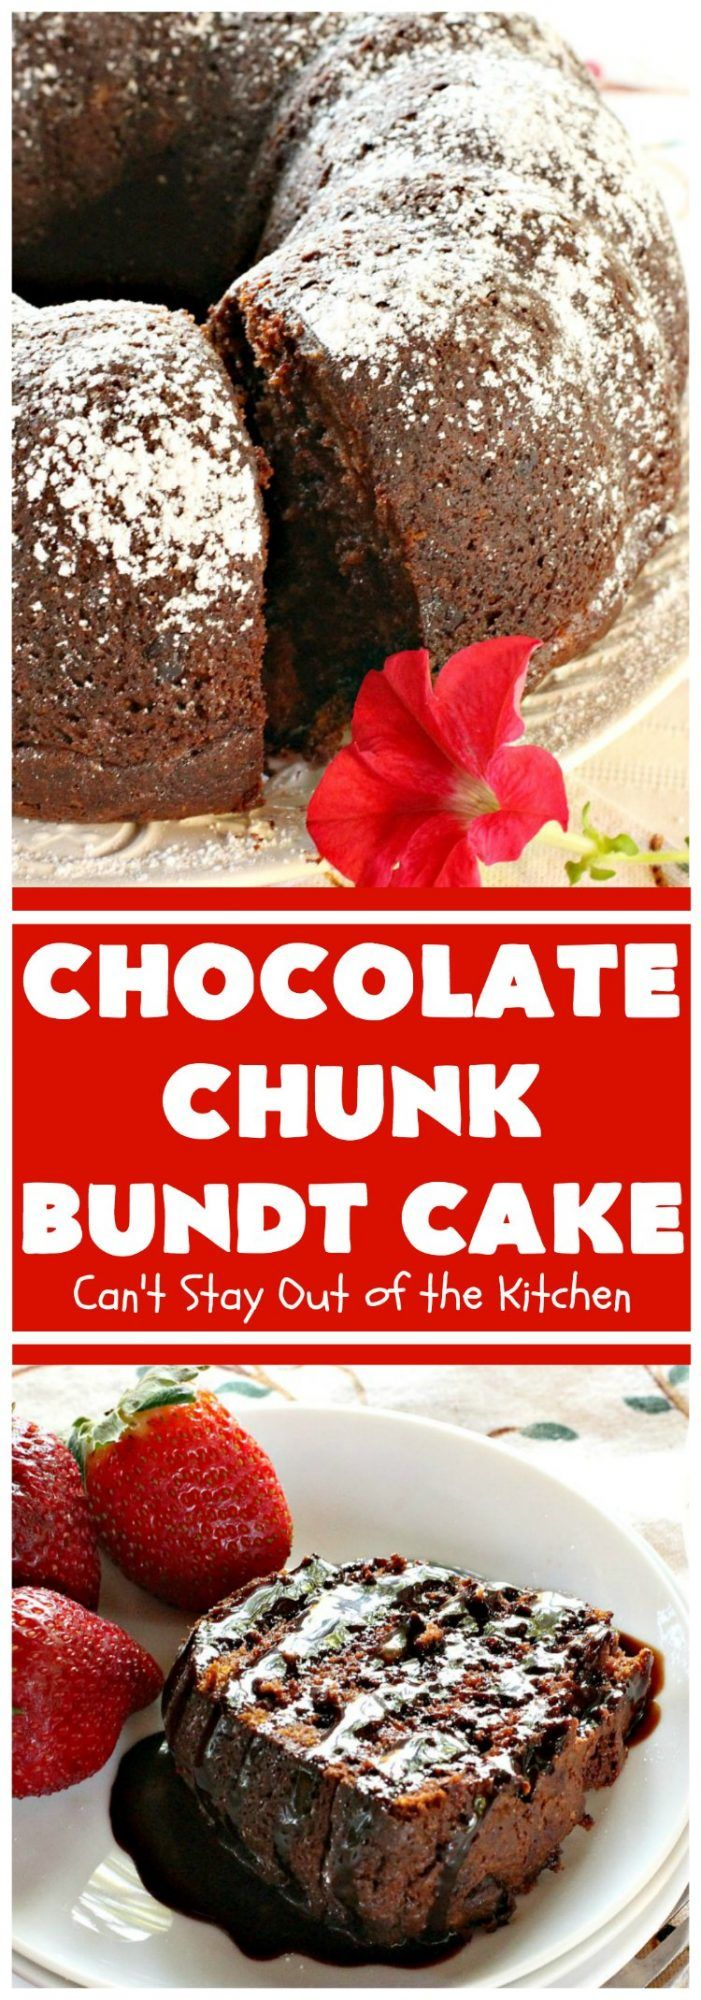 Chocolate Butter Pecan Pound Cake Chocolate Chunk Bundt Cake | Can't Stay Out of the Kitchen | this spectacular starts with a & mix. It uses only 7 ingredients so it's incredibly quick & easy. Perfect for like or It's even great for especially if you like